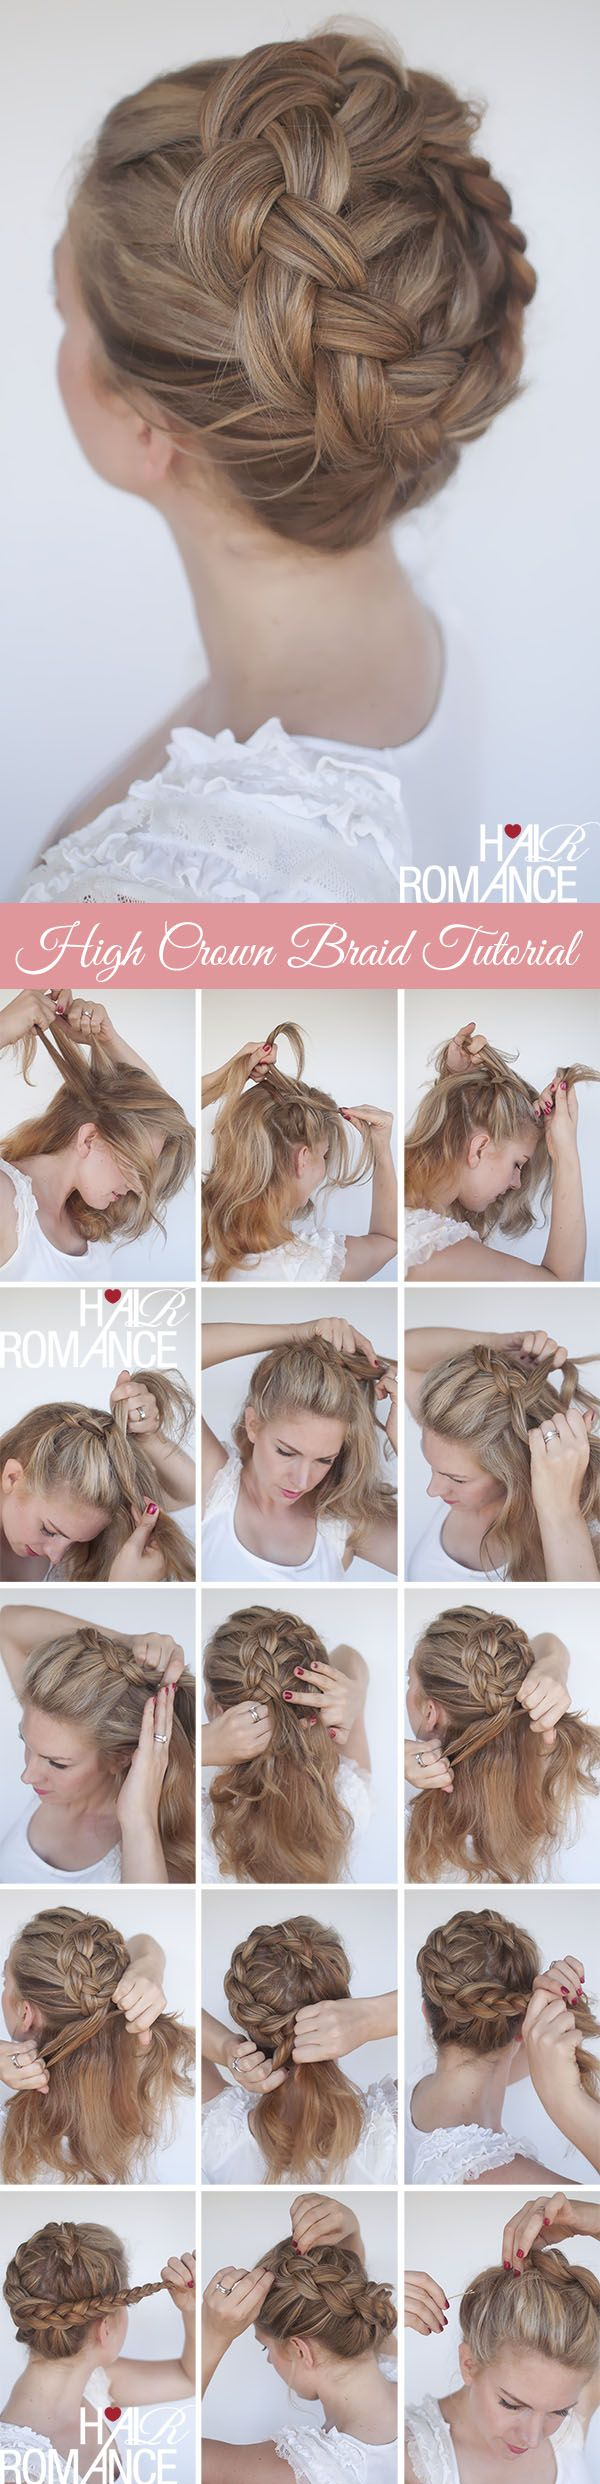 Pretty Hair Crown Hairstyle Tutorial